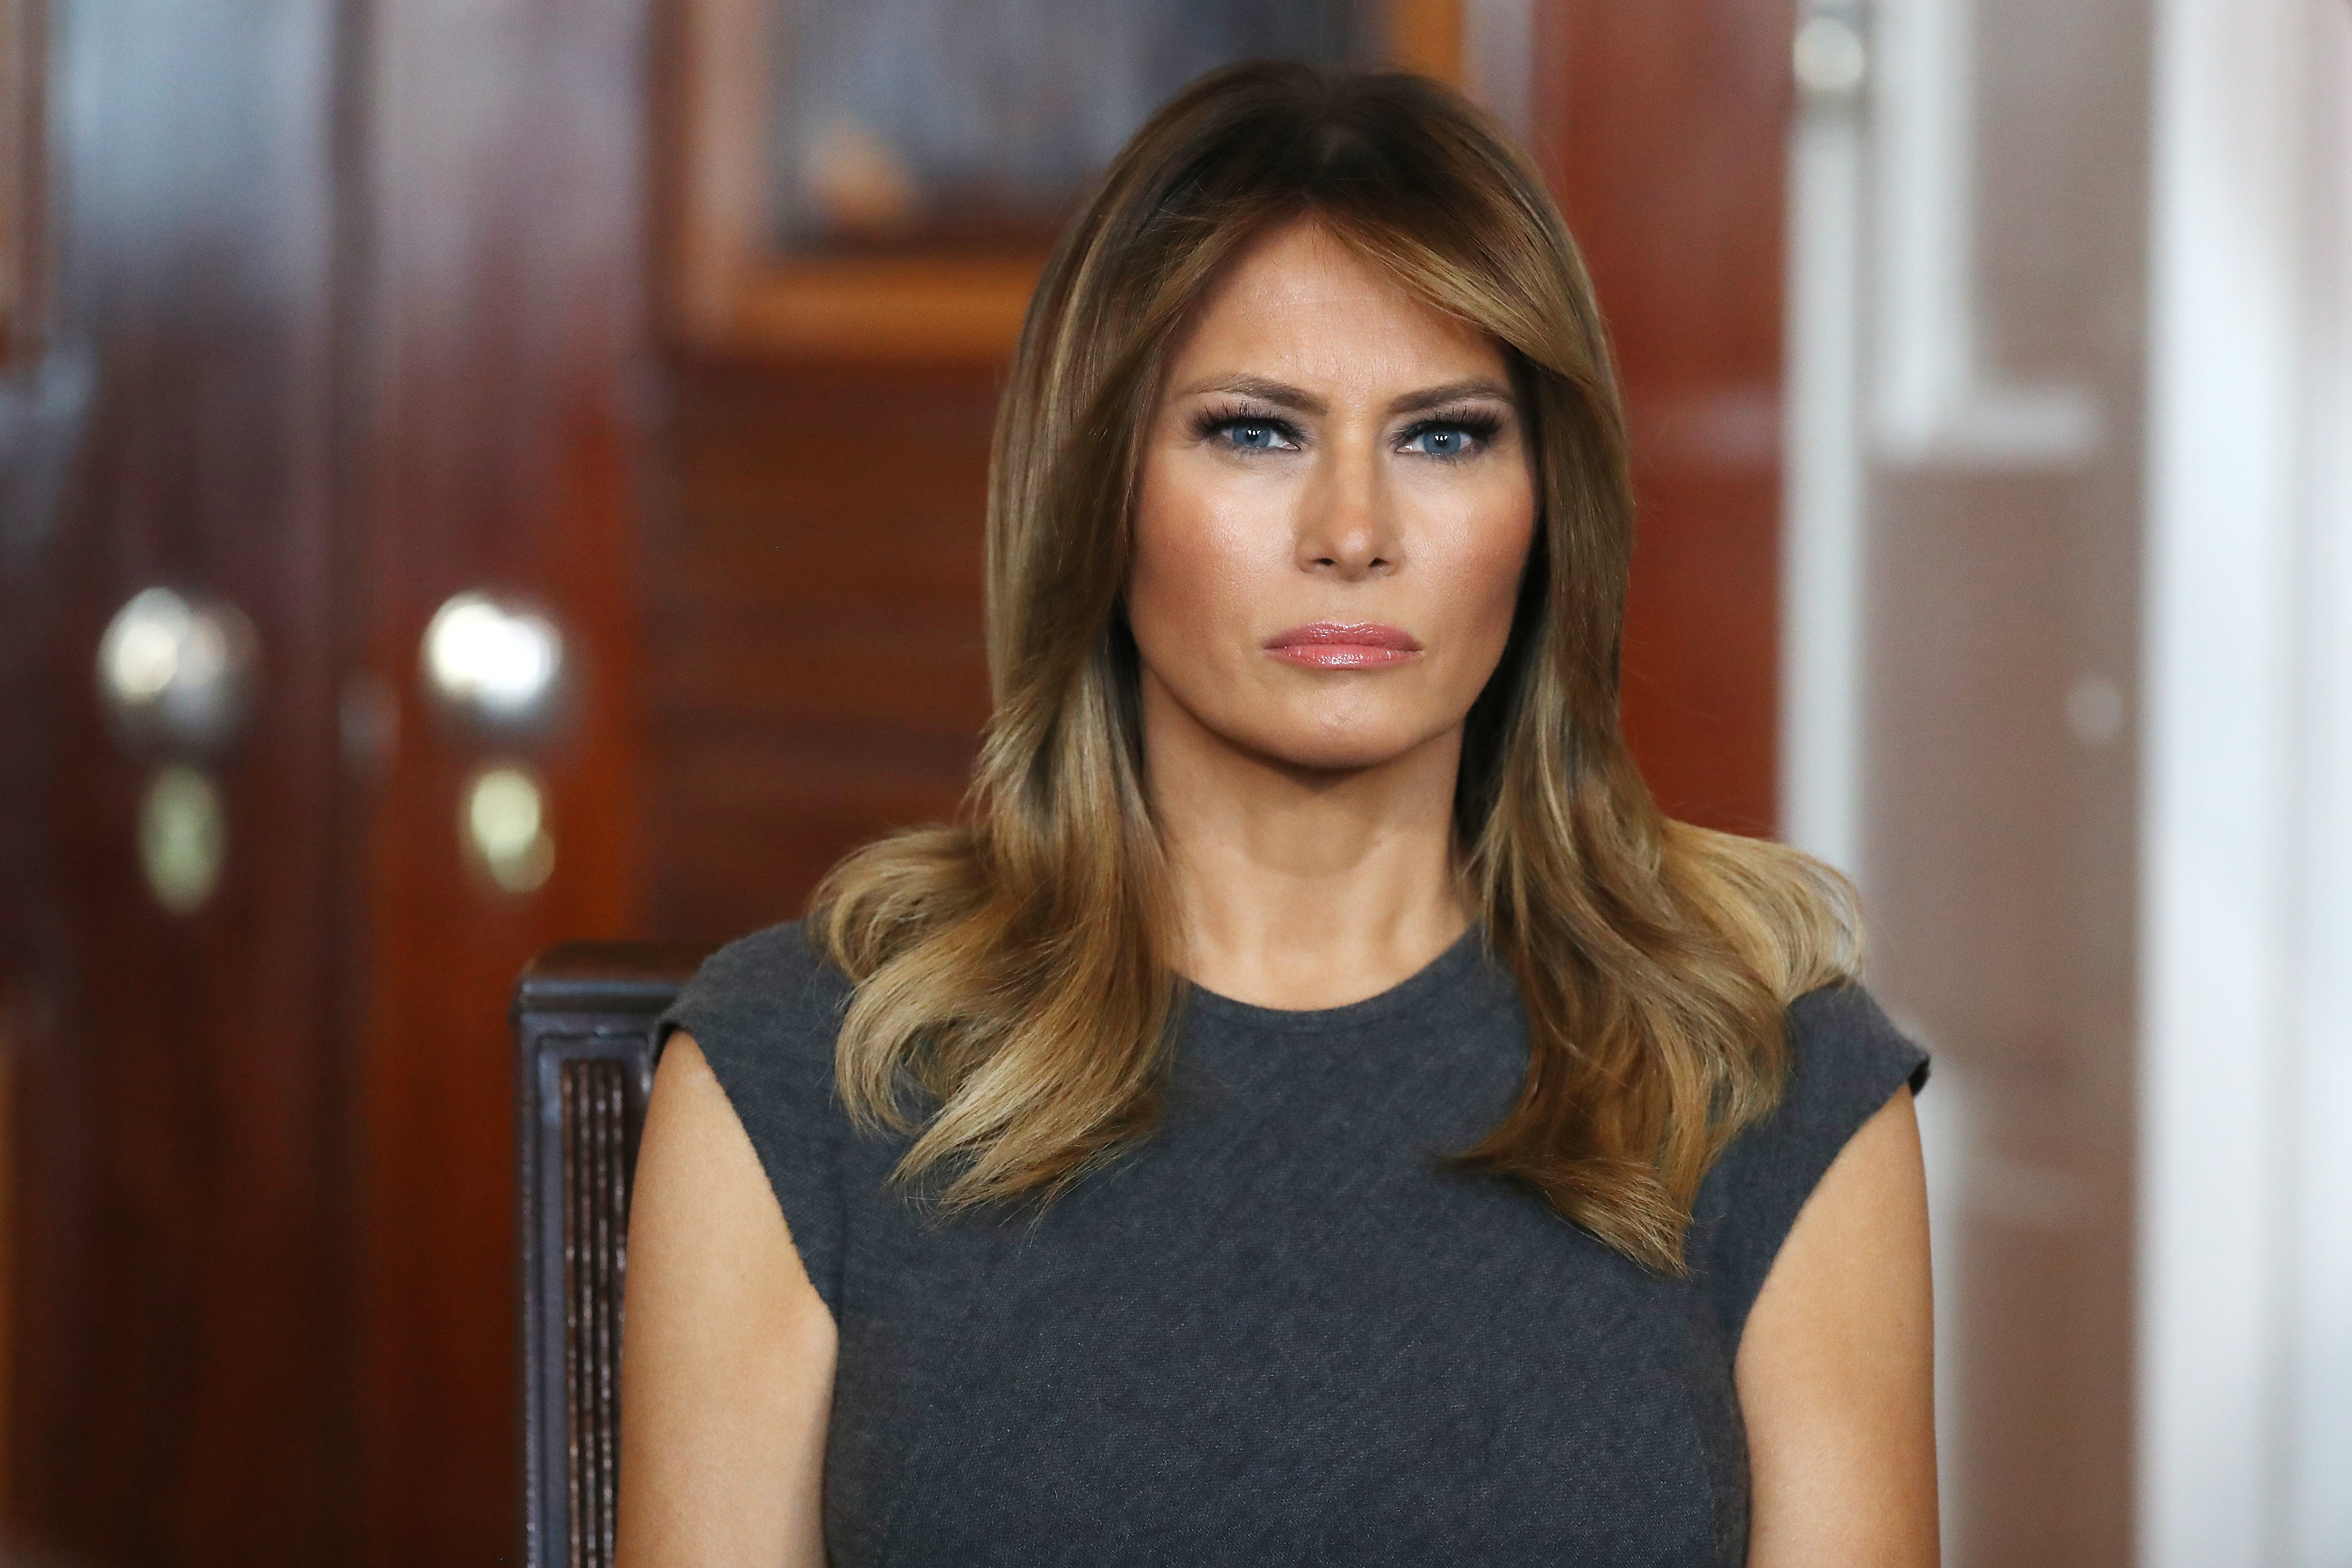 Melania Trump at the White House October 09, 2019, in Washington, DC. | Source: Getty Images.